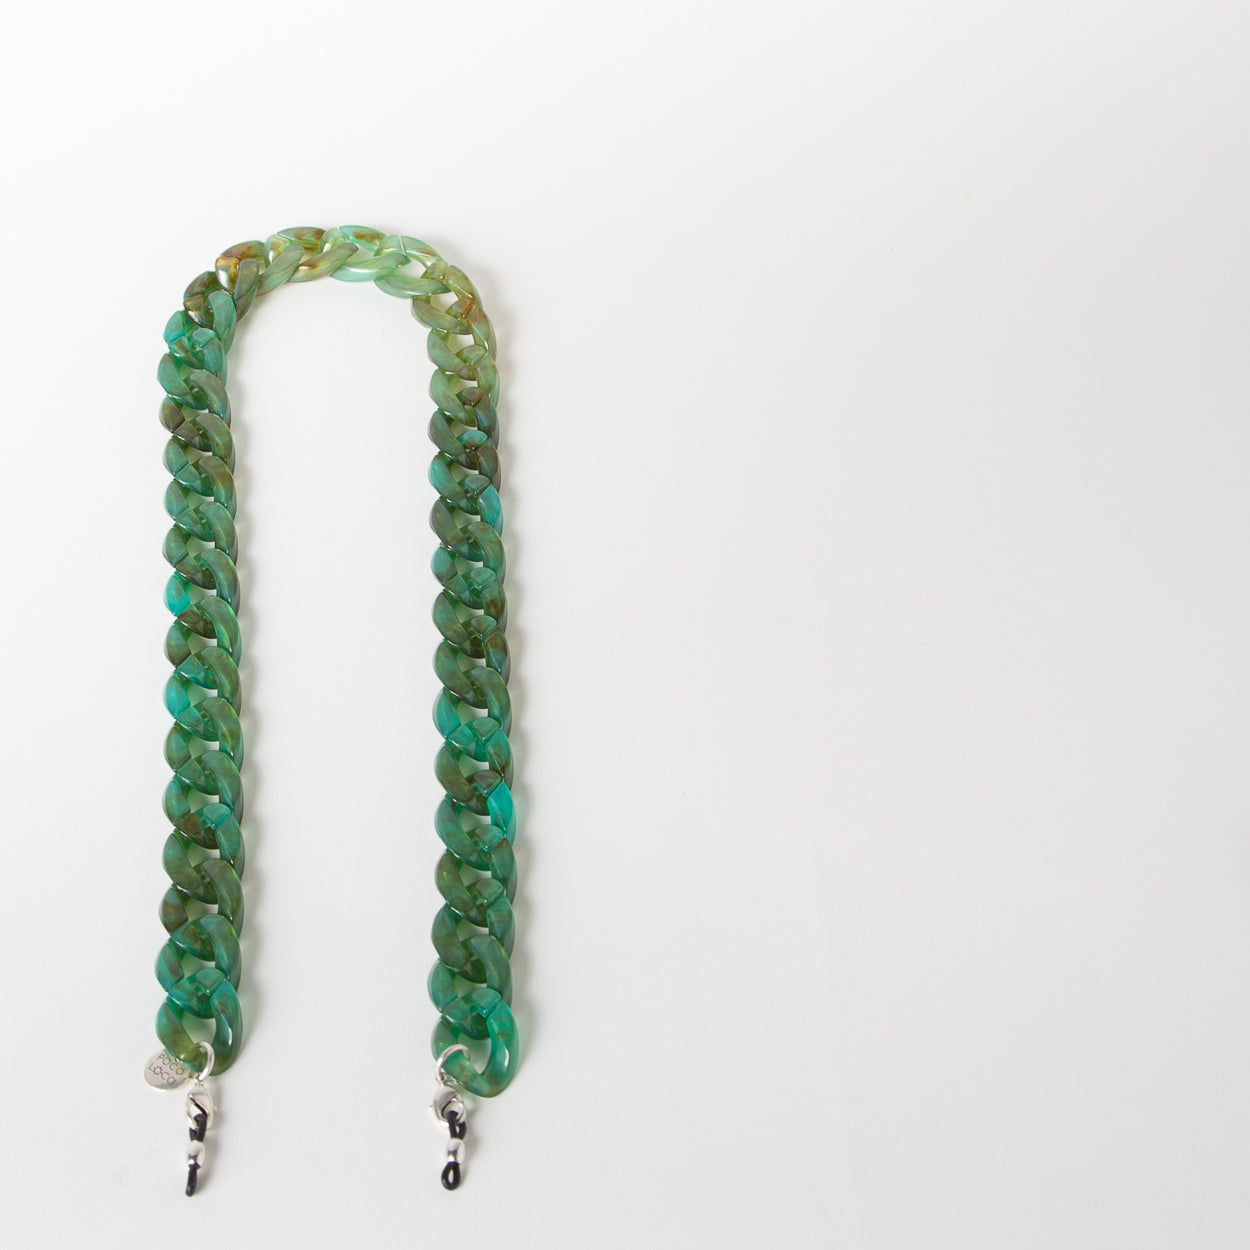 fashion green chain eyewear strap in acetate by Poco Loco